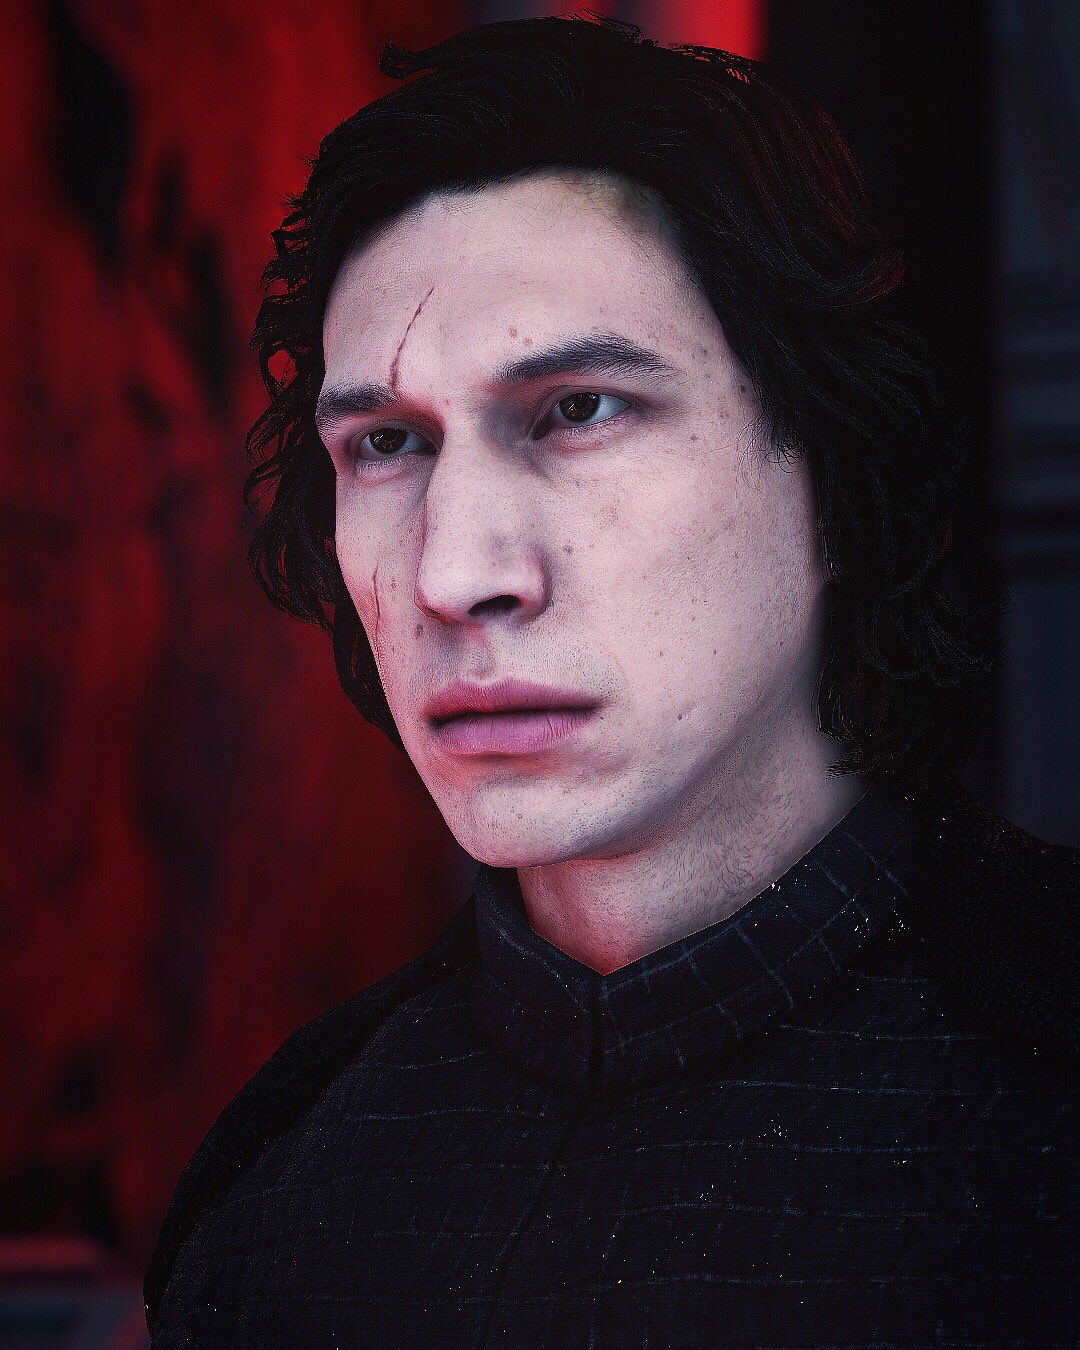 Happy birthday to Adam Driver, the man behind the mask!